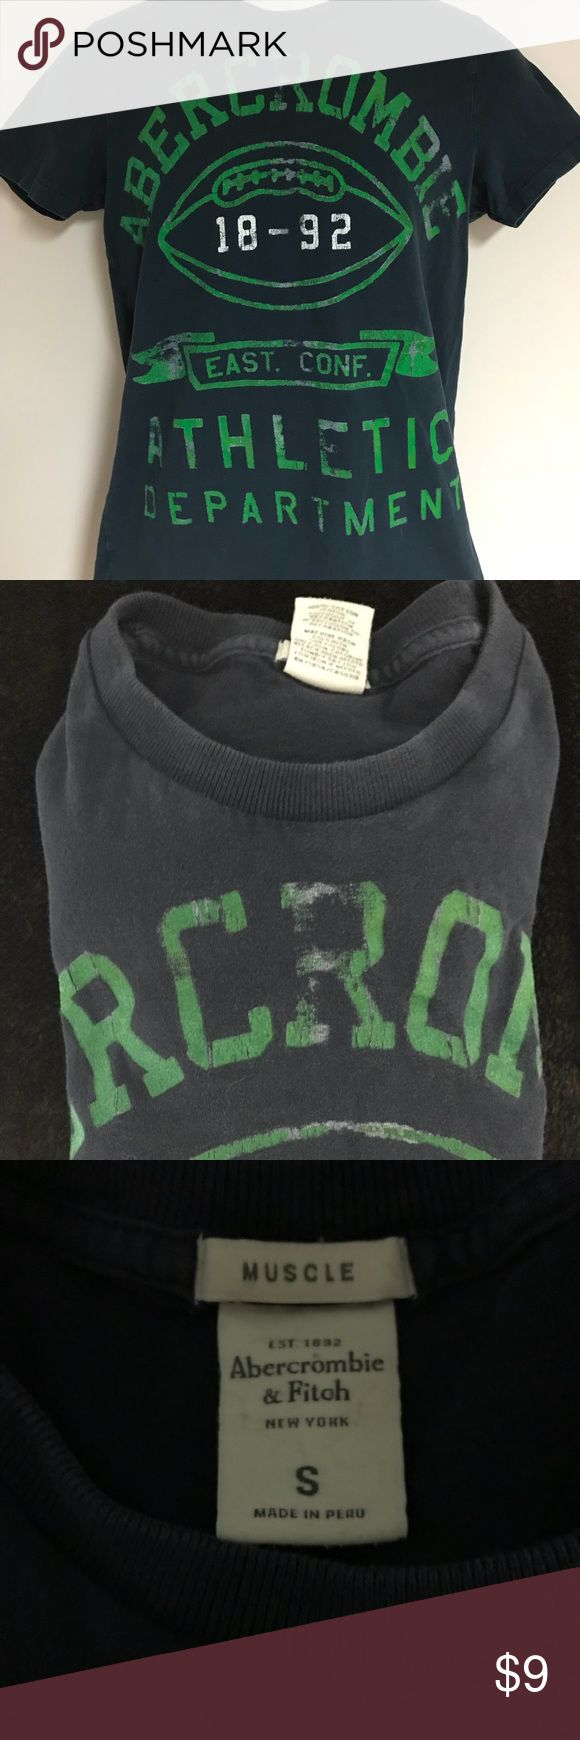 ABERCROMBIE AND FITCH Men's t-shirt ABERCROMBIE AND FITCH Men's t-shirt size small.    T-shirt's on sale!  2 for $9 or 3 for $12. Create a bundle and I'll send a private offer with the sale price. Abercrombie & Fitch Shirts Tees - Short Sleeve